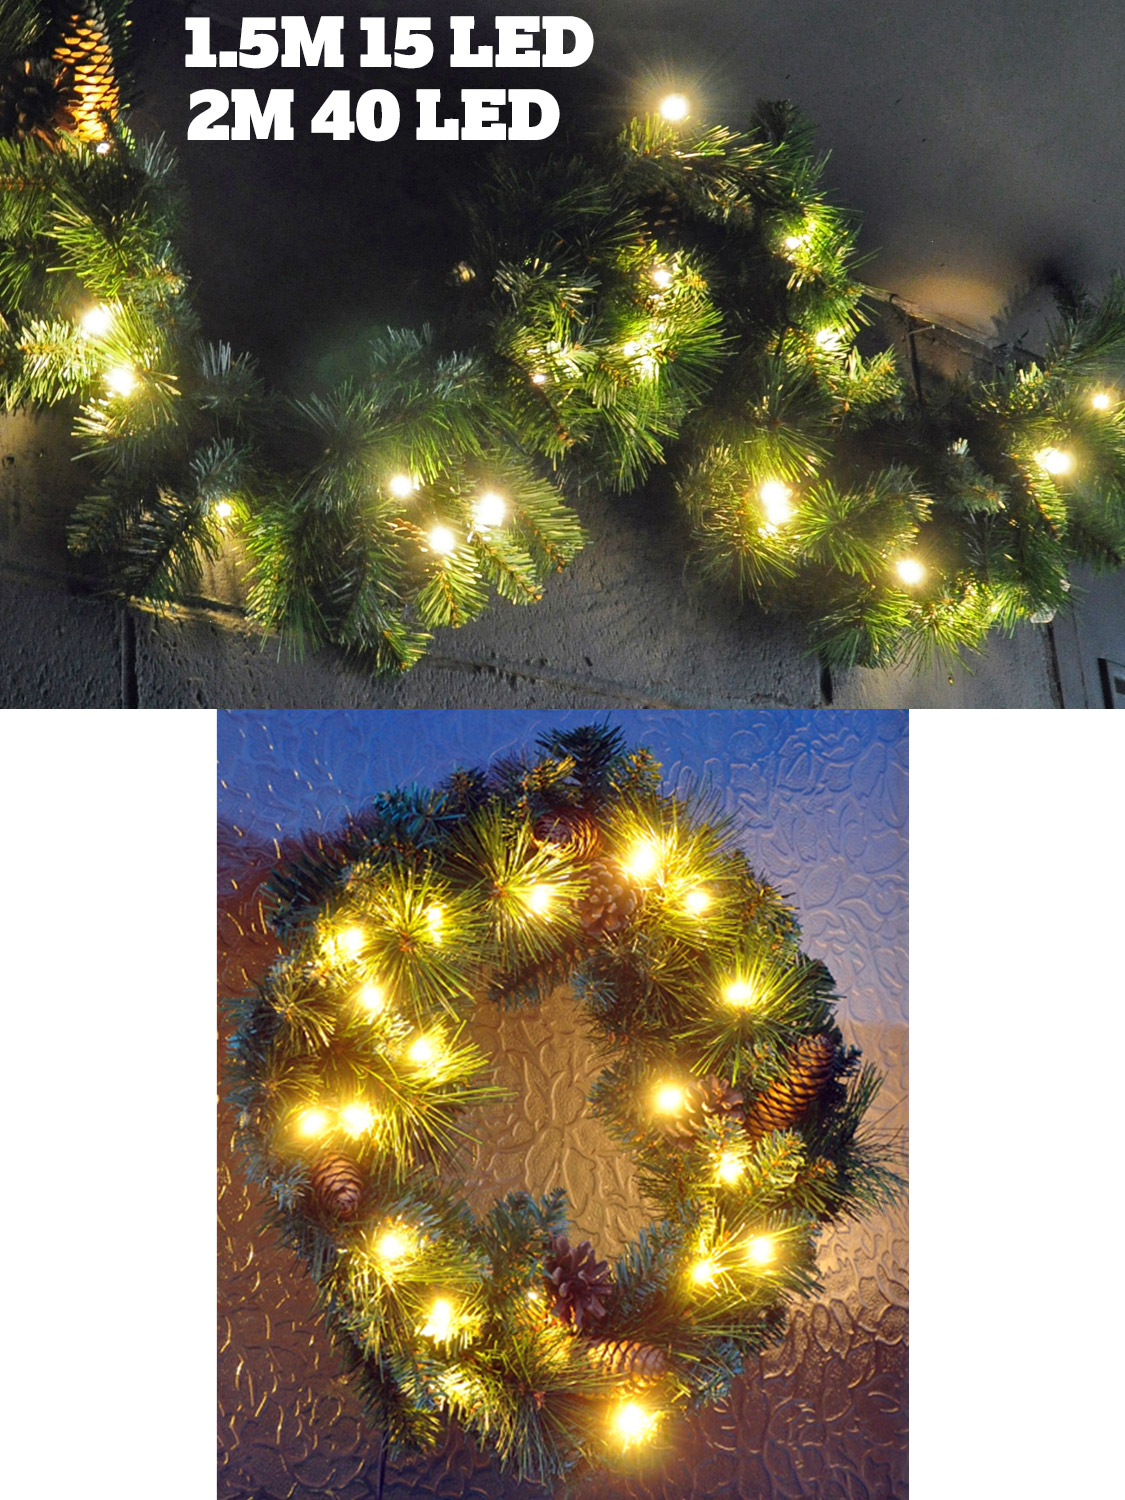 Christmas Lighted Garlands.Details About Pre Lit Led Christmas Garland Wreath Xmas Decoration Traditional Warm White